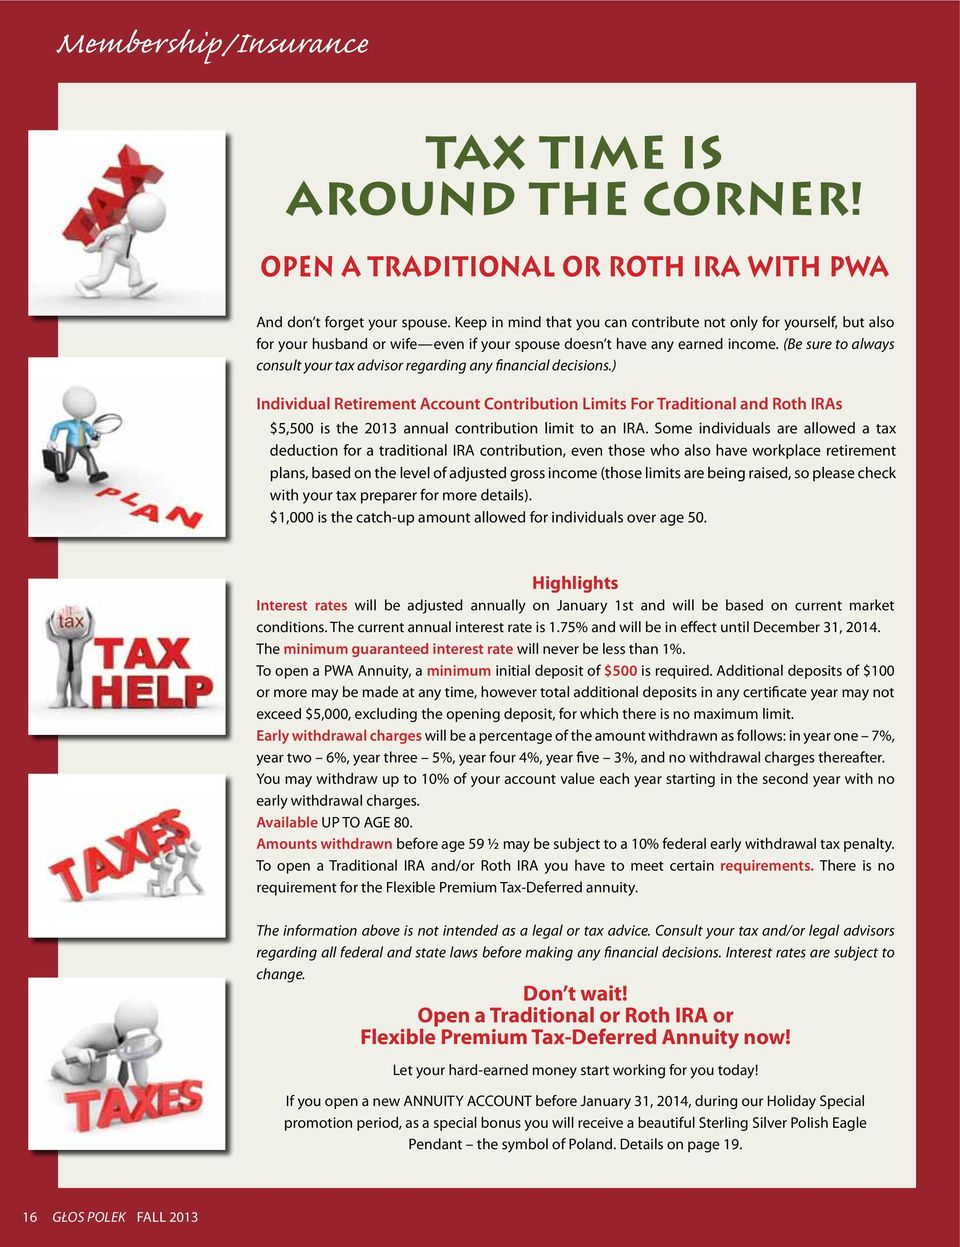 (Be sure to always consult your tax advisor regarding any financial decisions.